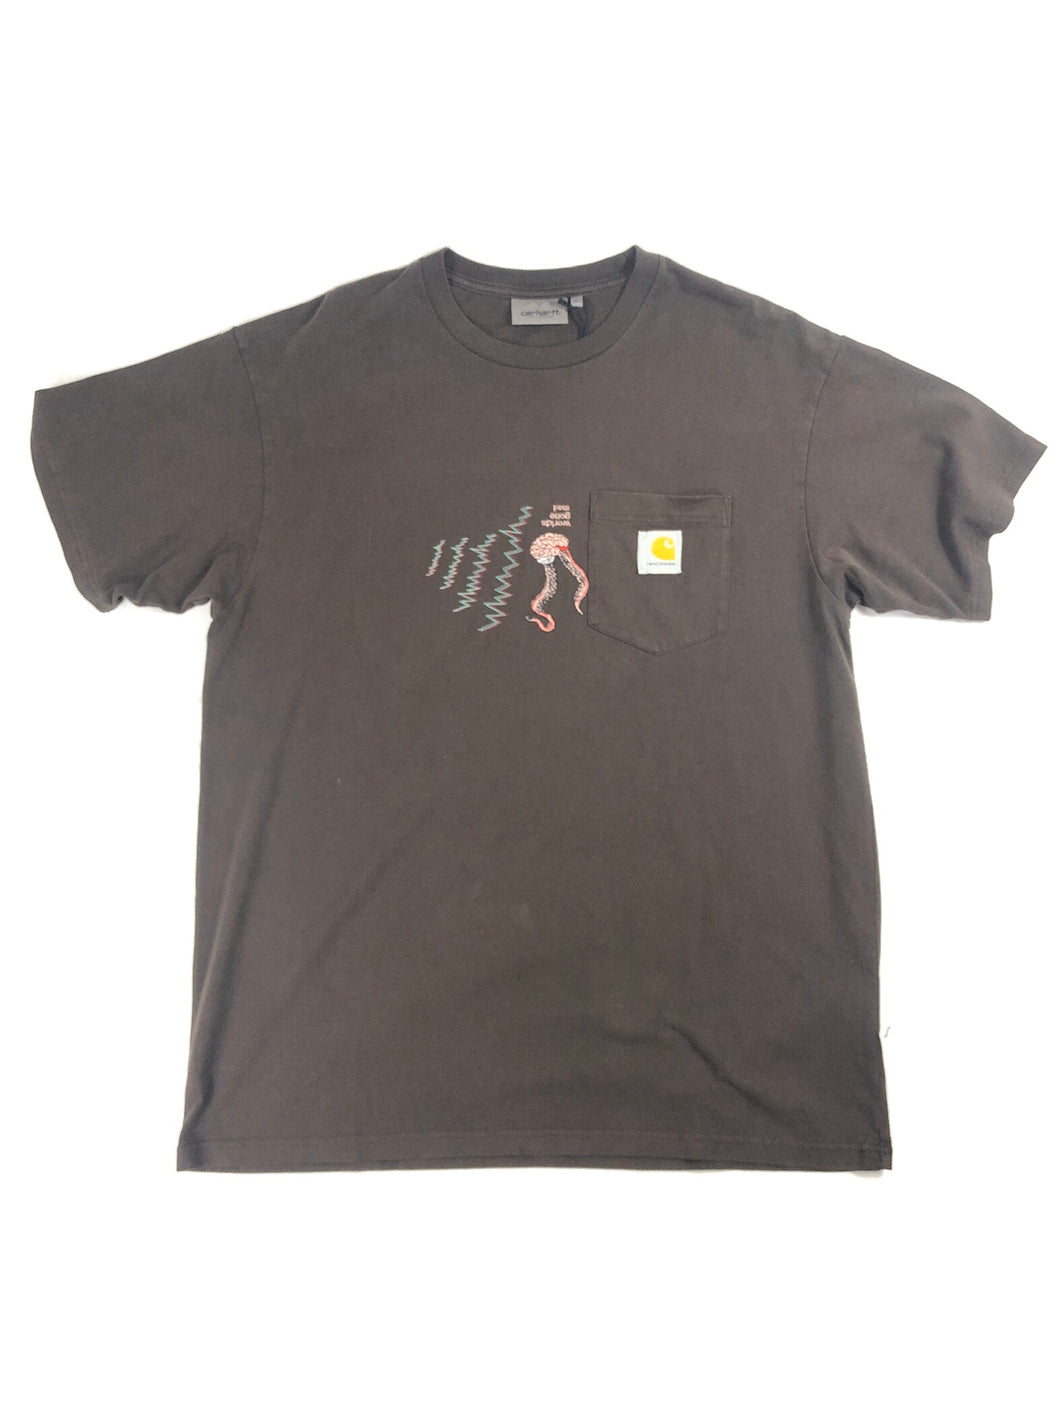 "Carhartt World Gone Mad"" T-Shirt (Brown)"